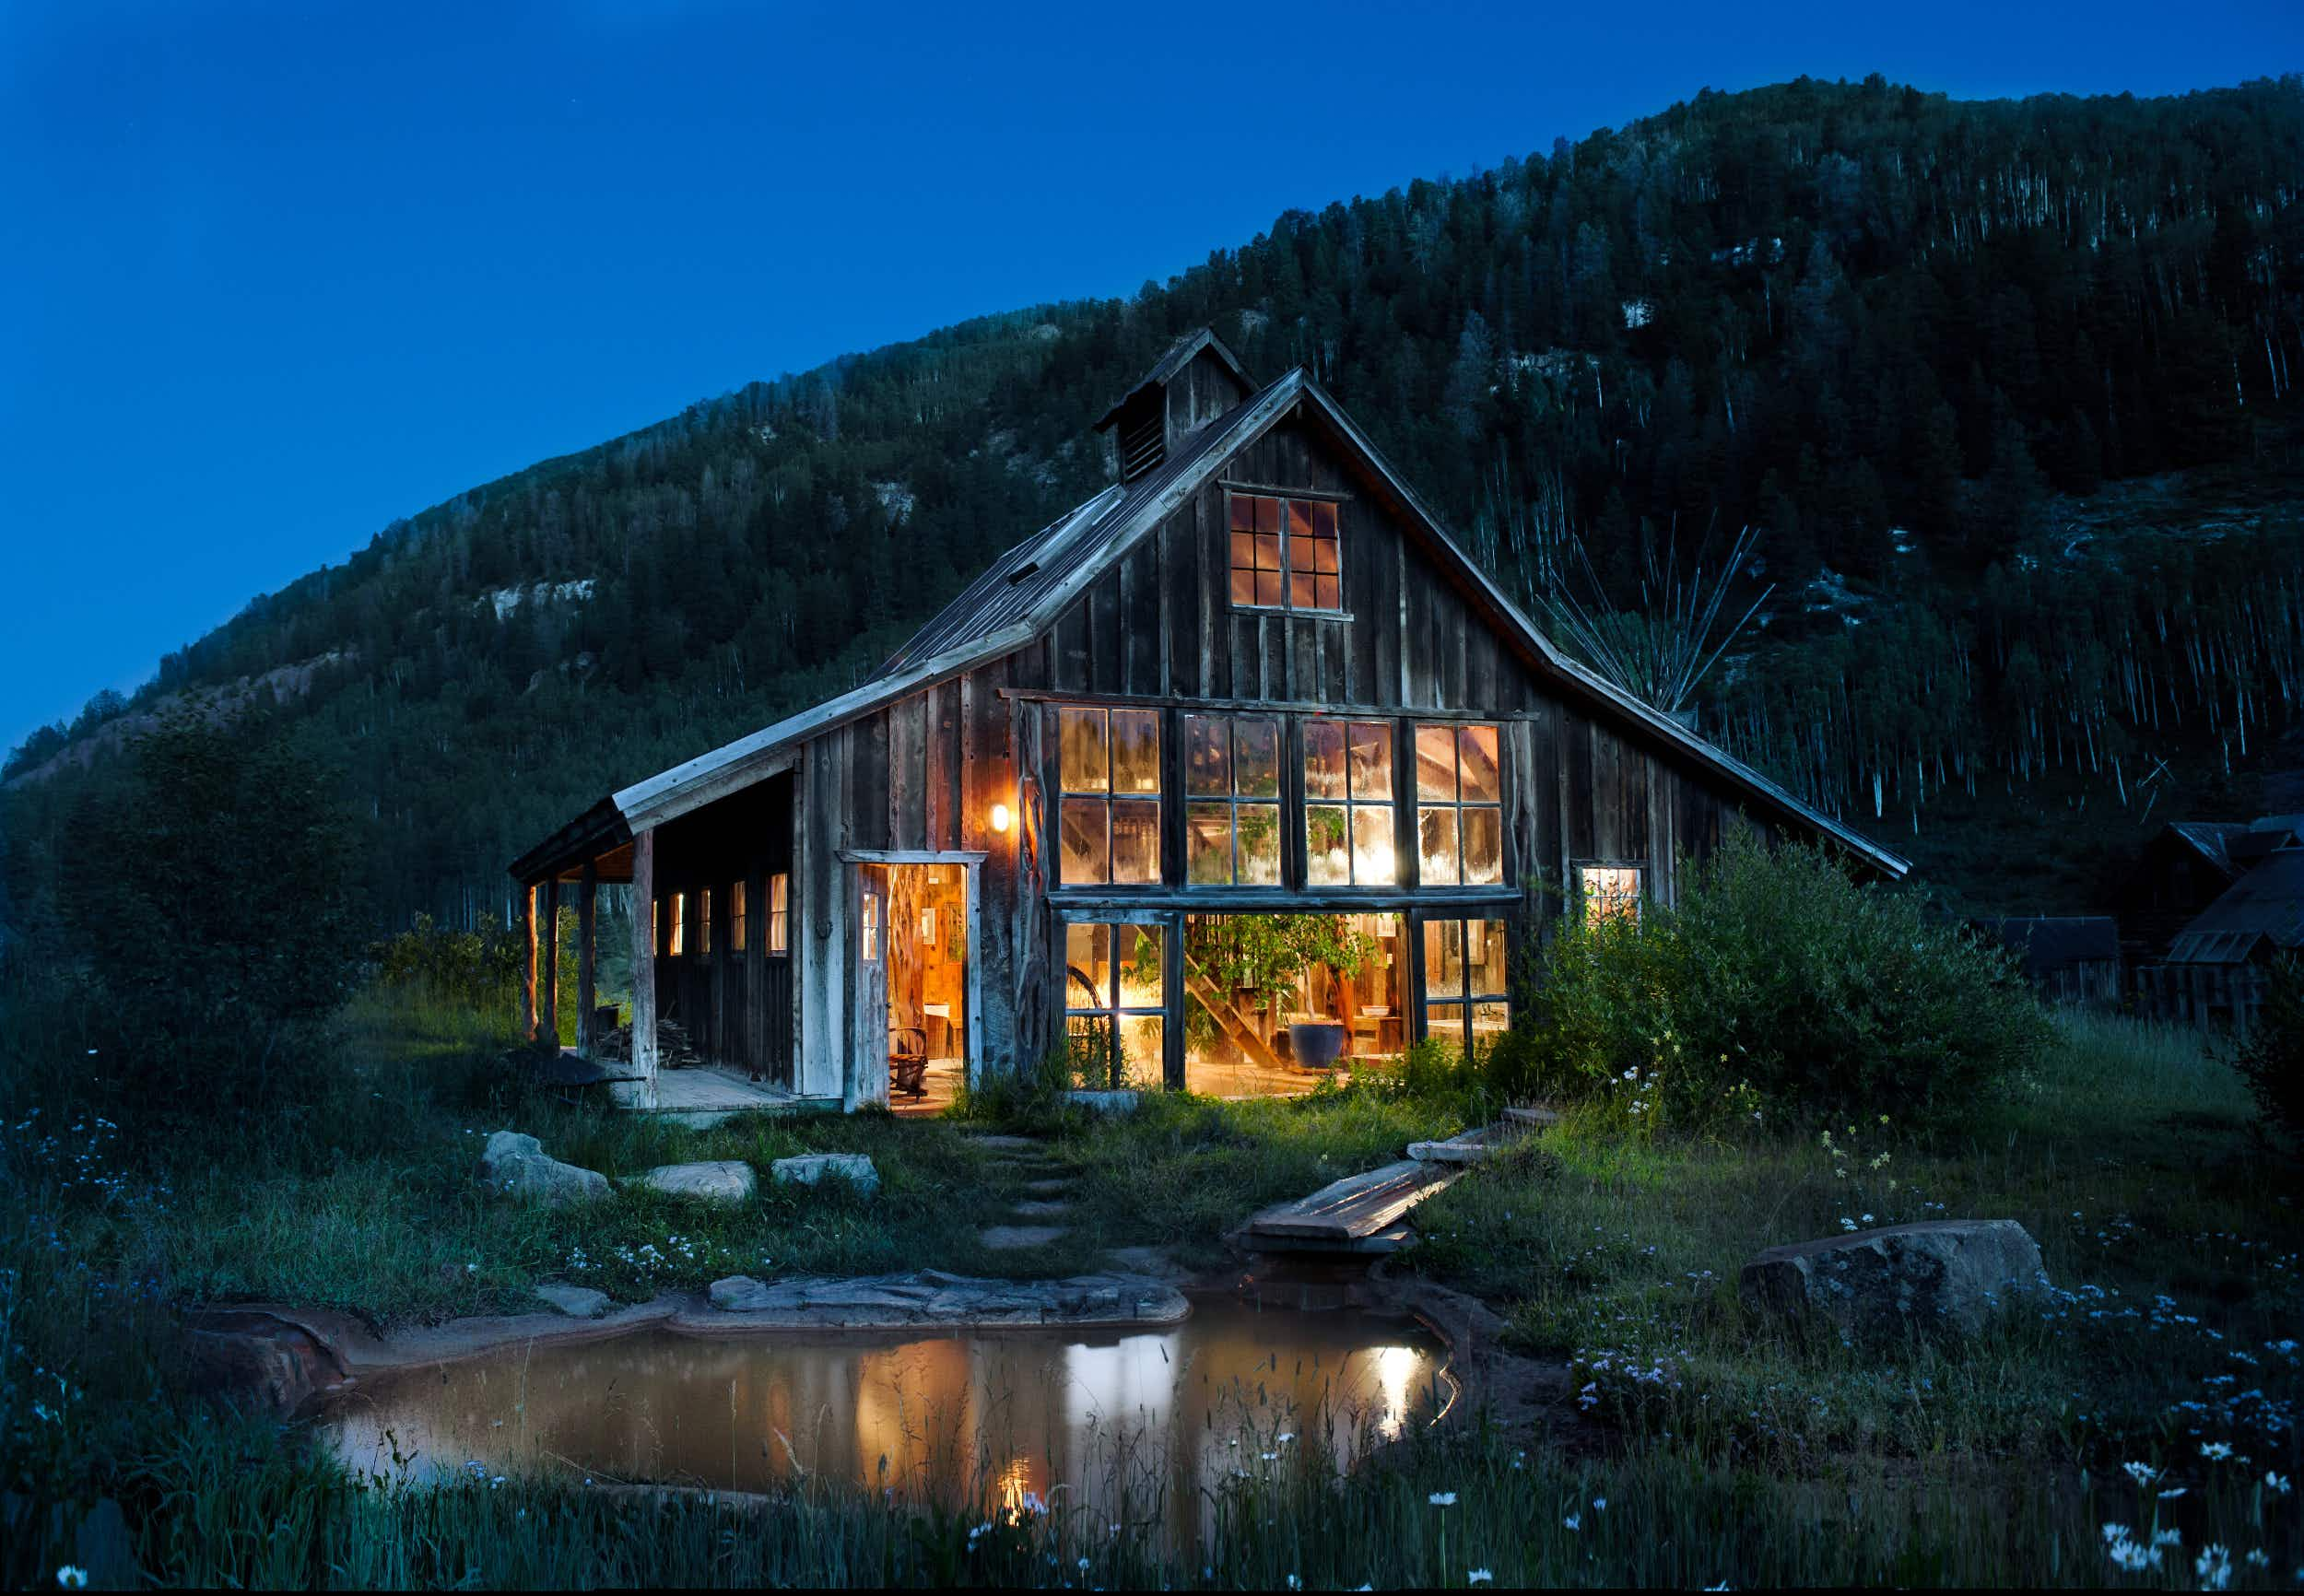 Escape to nature at this stunning former ghost town in Colorado's Rocky Mountains